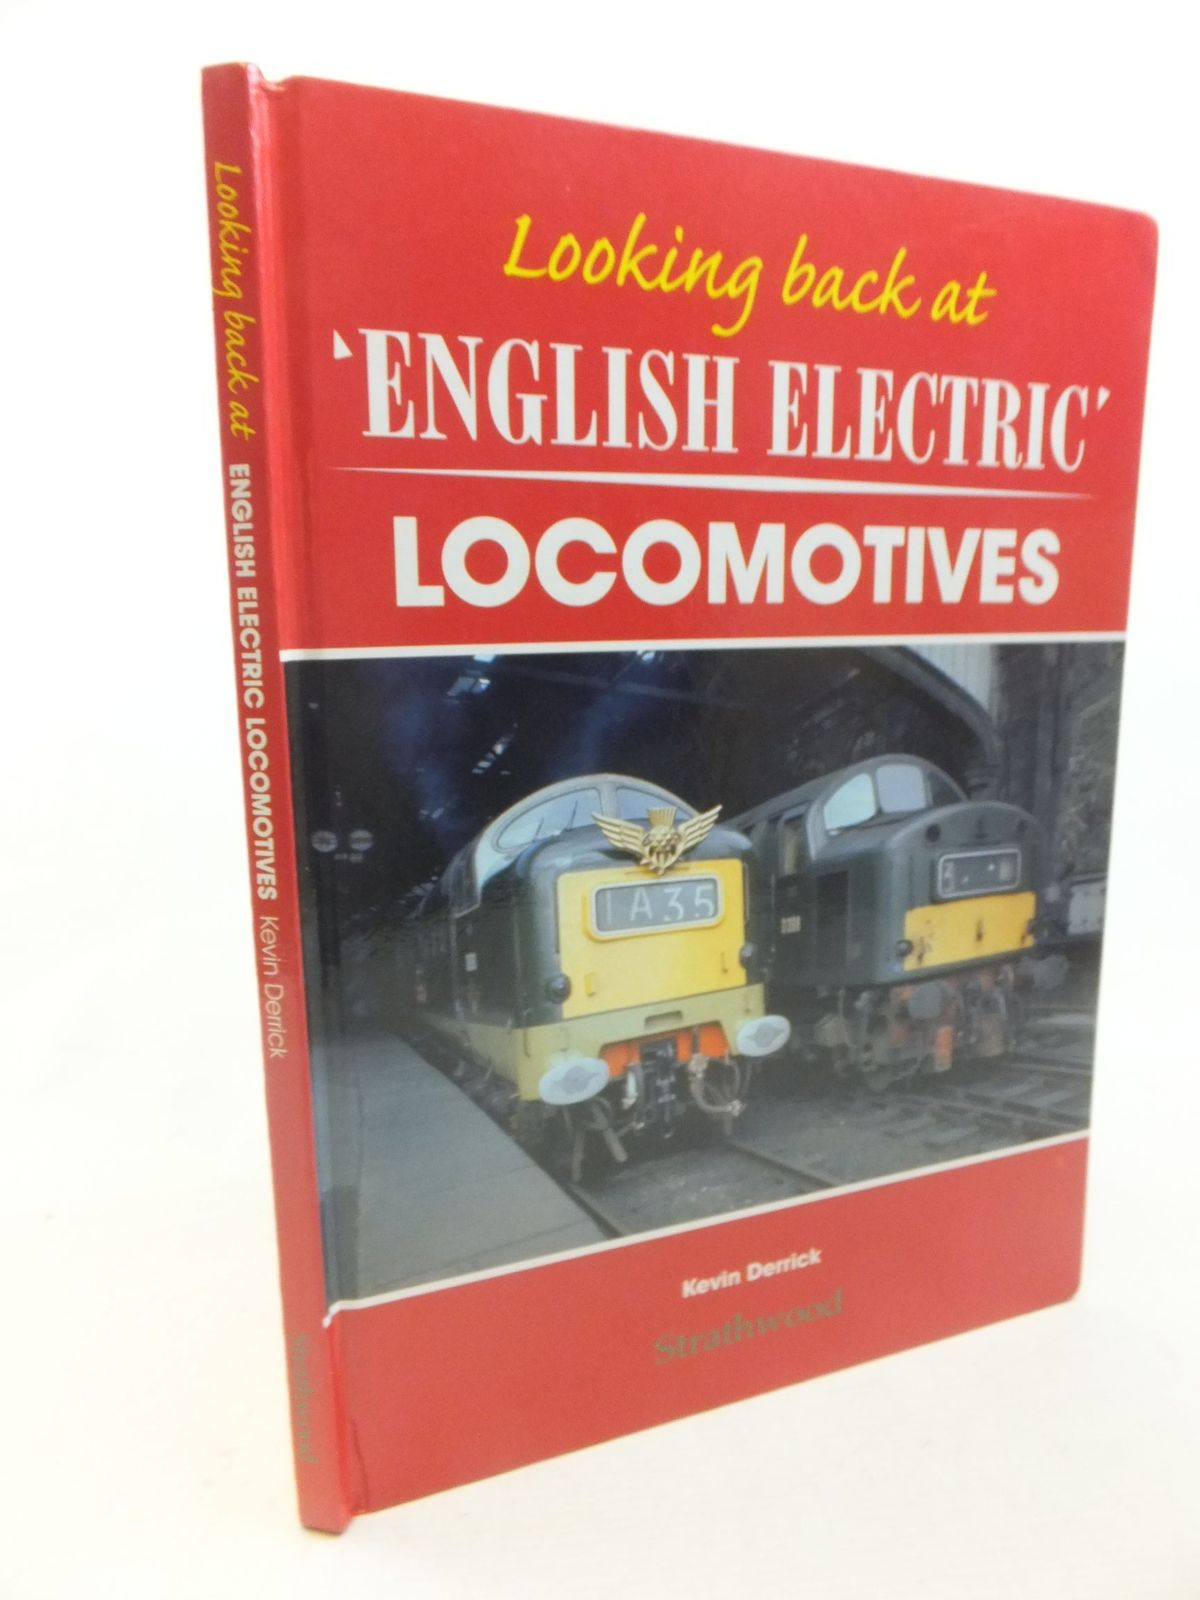 Photo of LOOKING BACK AT ENGLISH ELECTRIC LOCOMOTIVES written by Derrick, Kevin published by Strathwood Ltd (STOCK CODE: 2117847)  for sale by Stella & Rose's Books